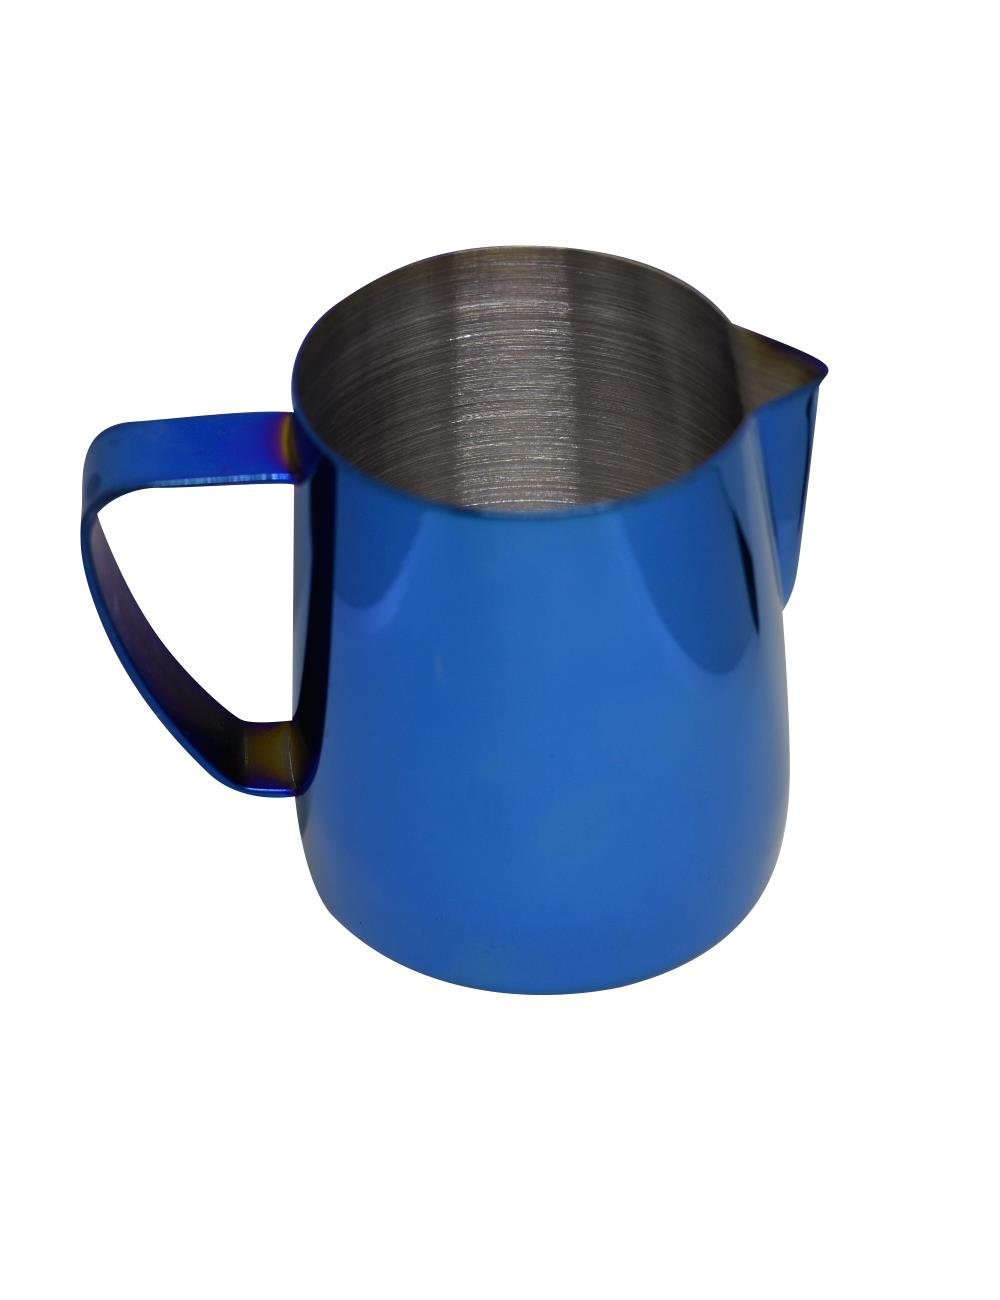 Latte Art | Stainless Steel Milk Frothing Pitcher Cobalt Blue 12 oz Titanium Mirror Finish